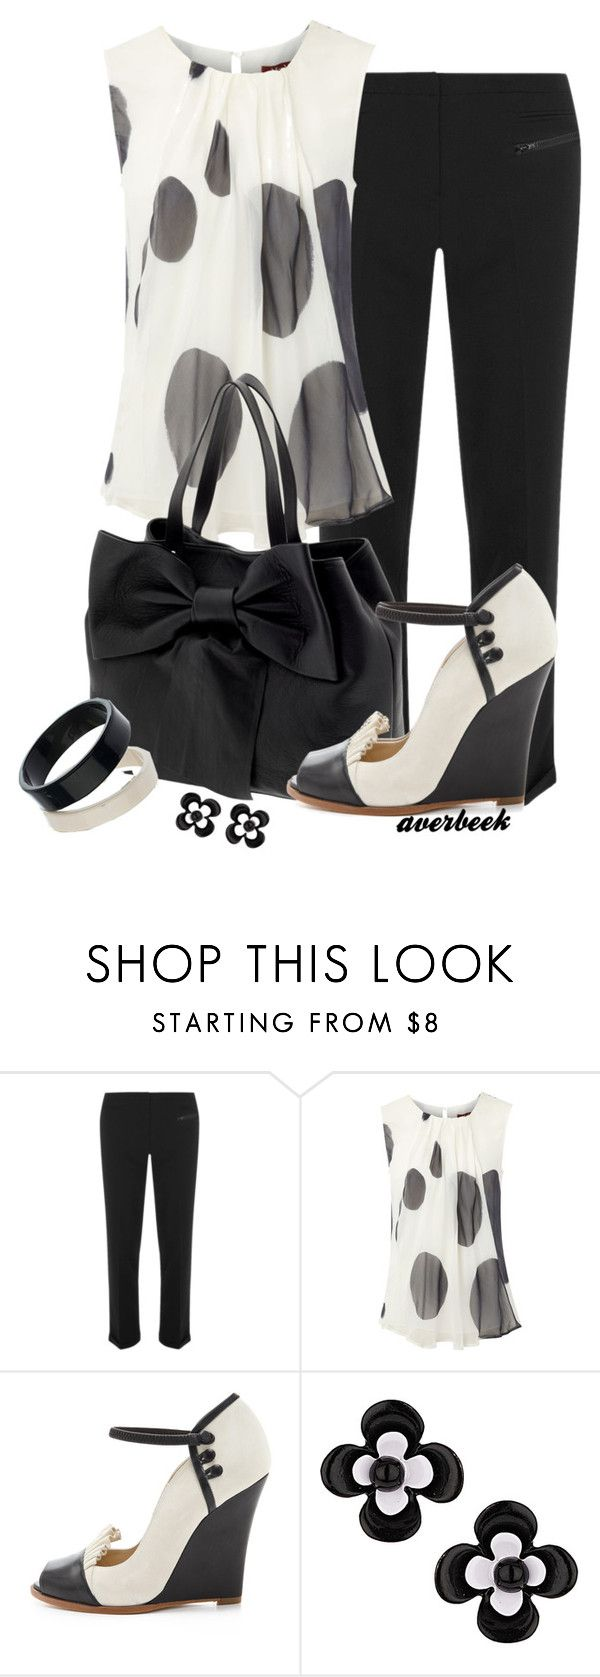 """Black and White Wedge Pump"" by averbeek ❤ liked on Polyvore featuring Dorothy Perkins, MaxMara, RED Valentino and Moschino"